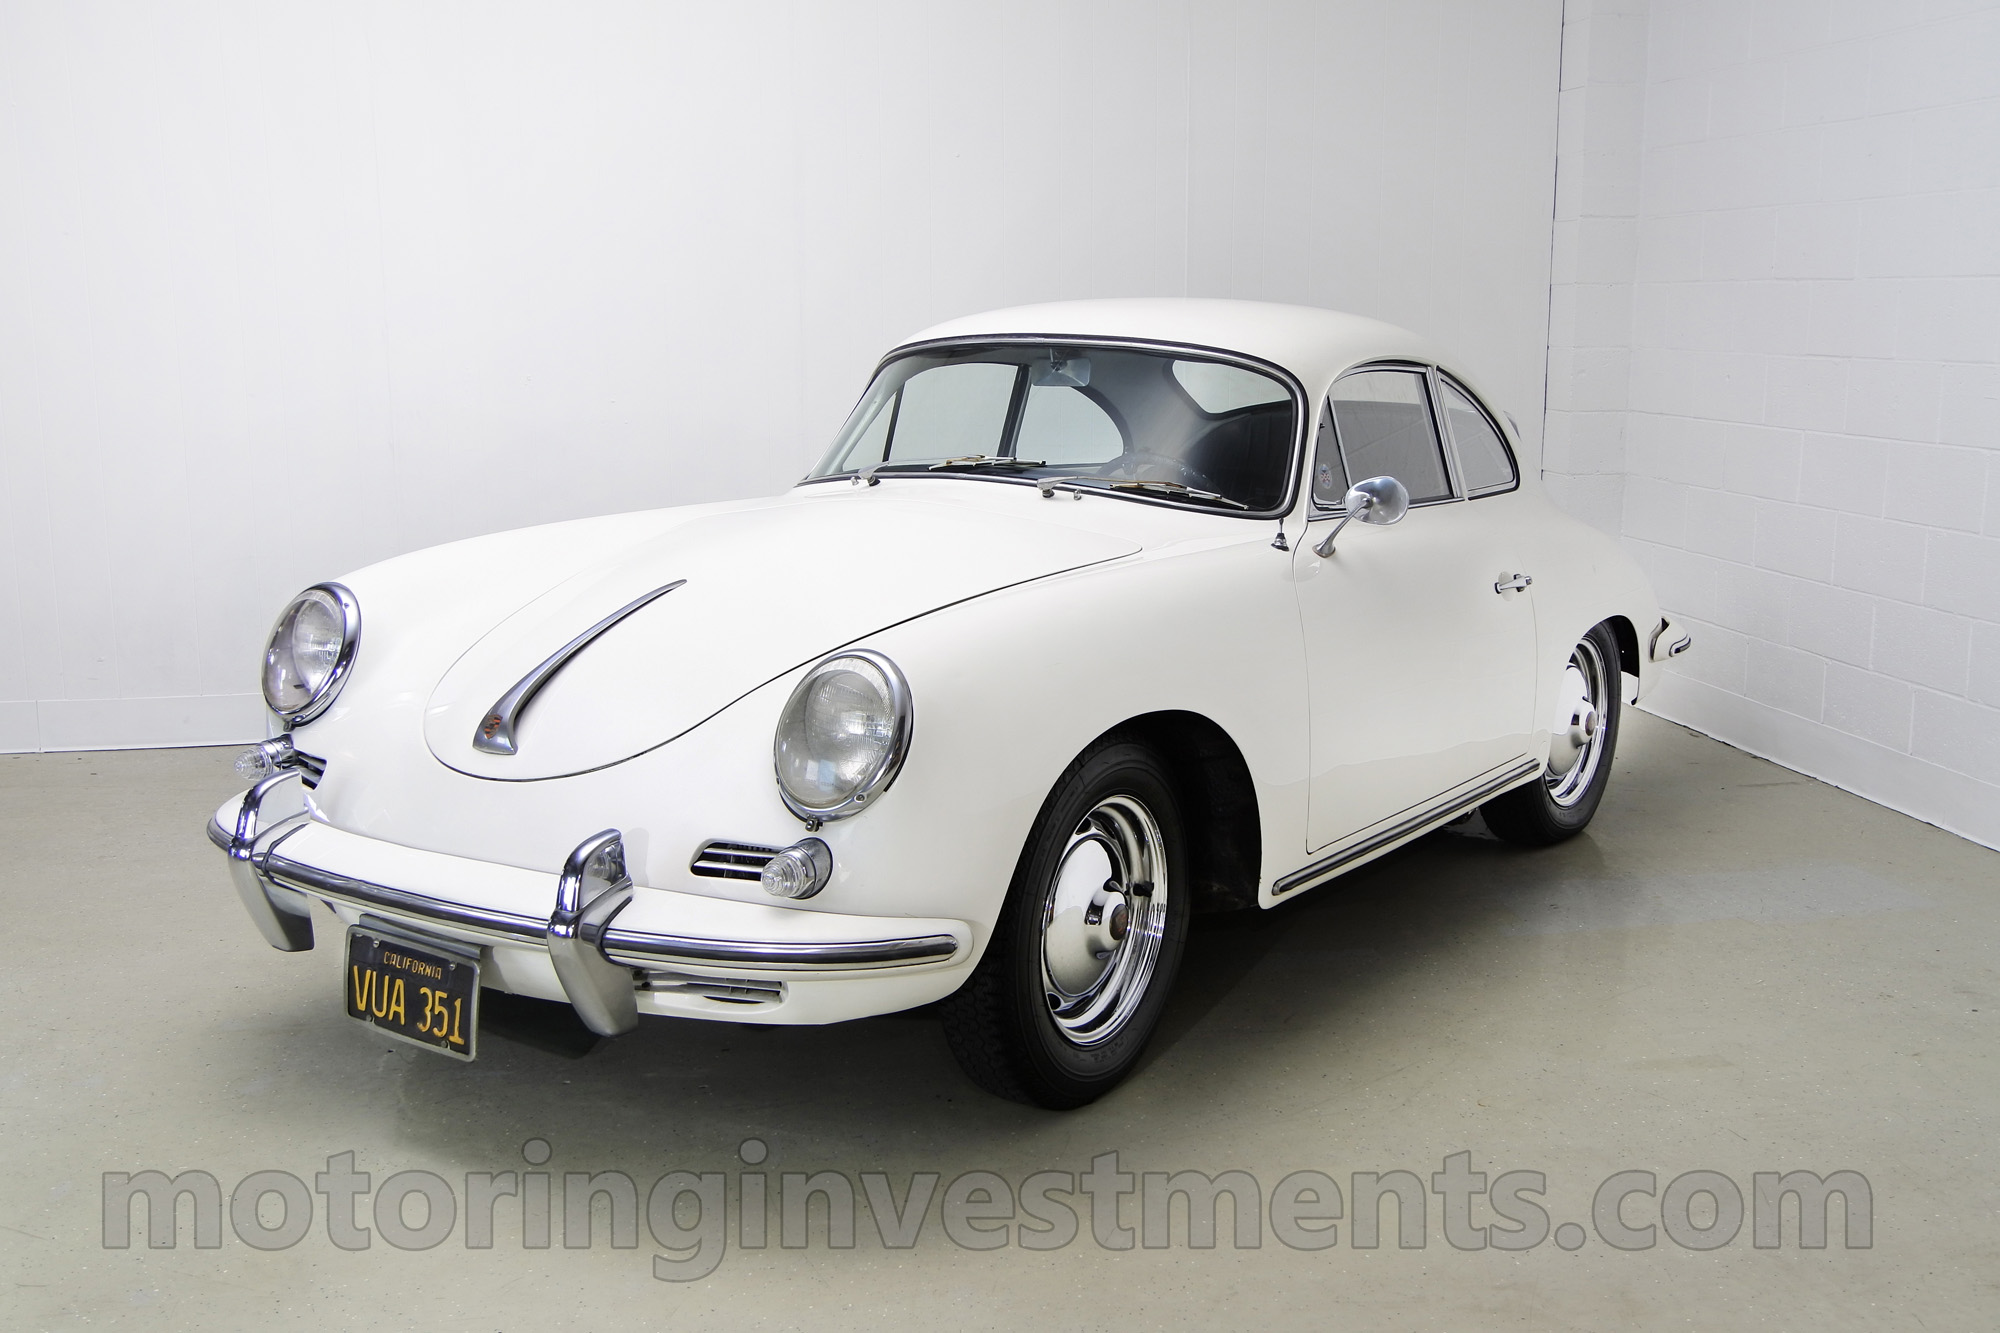 1961 Porsche 356 1600 S - Thank You Martha